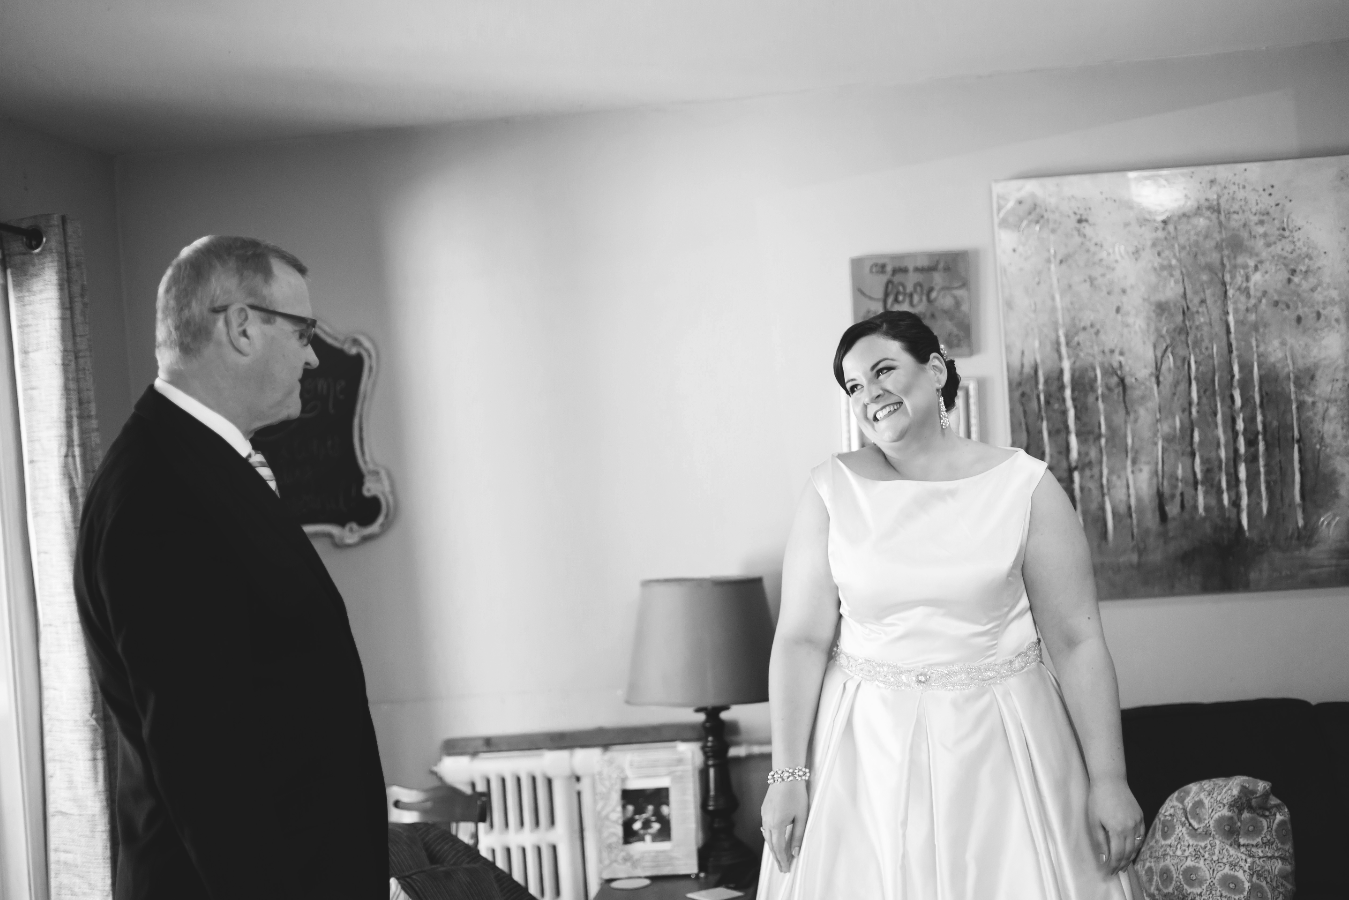 Moments-by-Lauren-Hamilton-Toronto-Niagara-Wedding-Photographer-Genuine-Emotional-Images-Photo-9.png